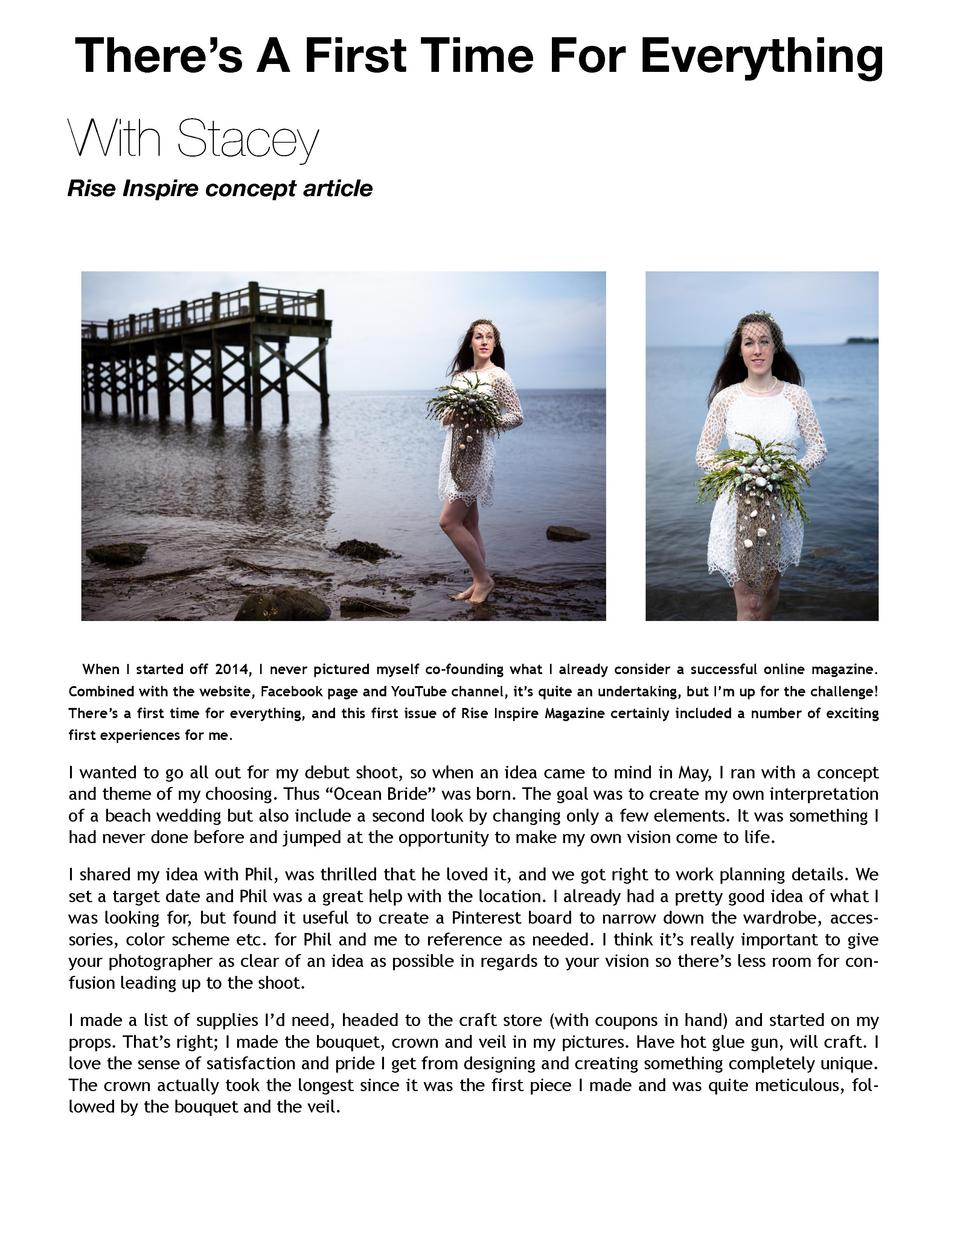 There   s A First Time For Everything  with Stacey Rise Inspire concept article  When I started off 2014, I never pictured...